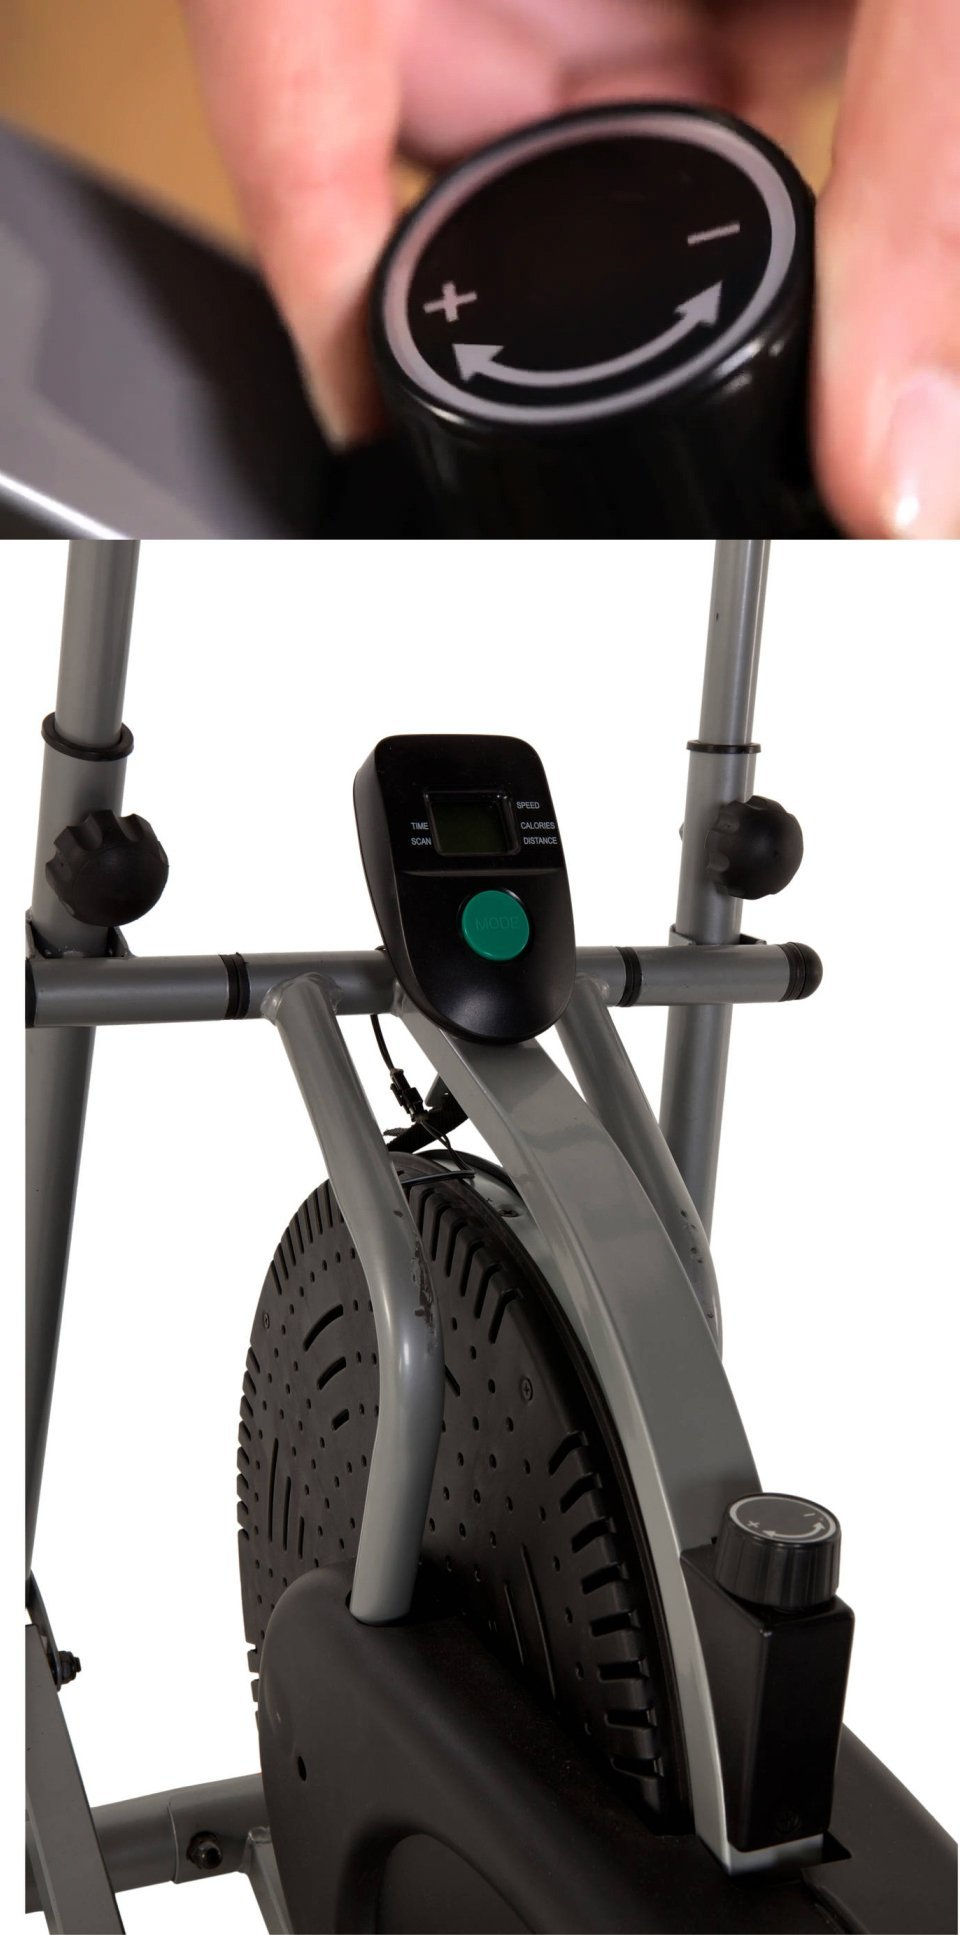 New super plus - Air Elliptical - 2 year warranty by Exerpeutic (Image #4)